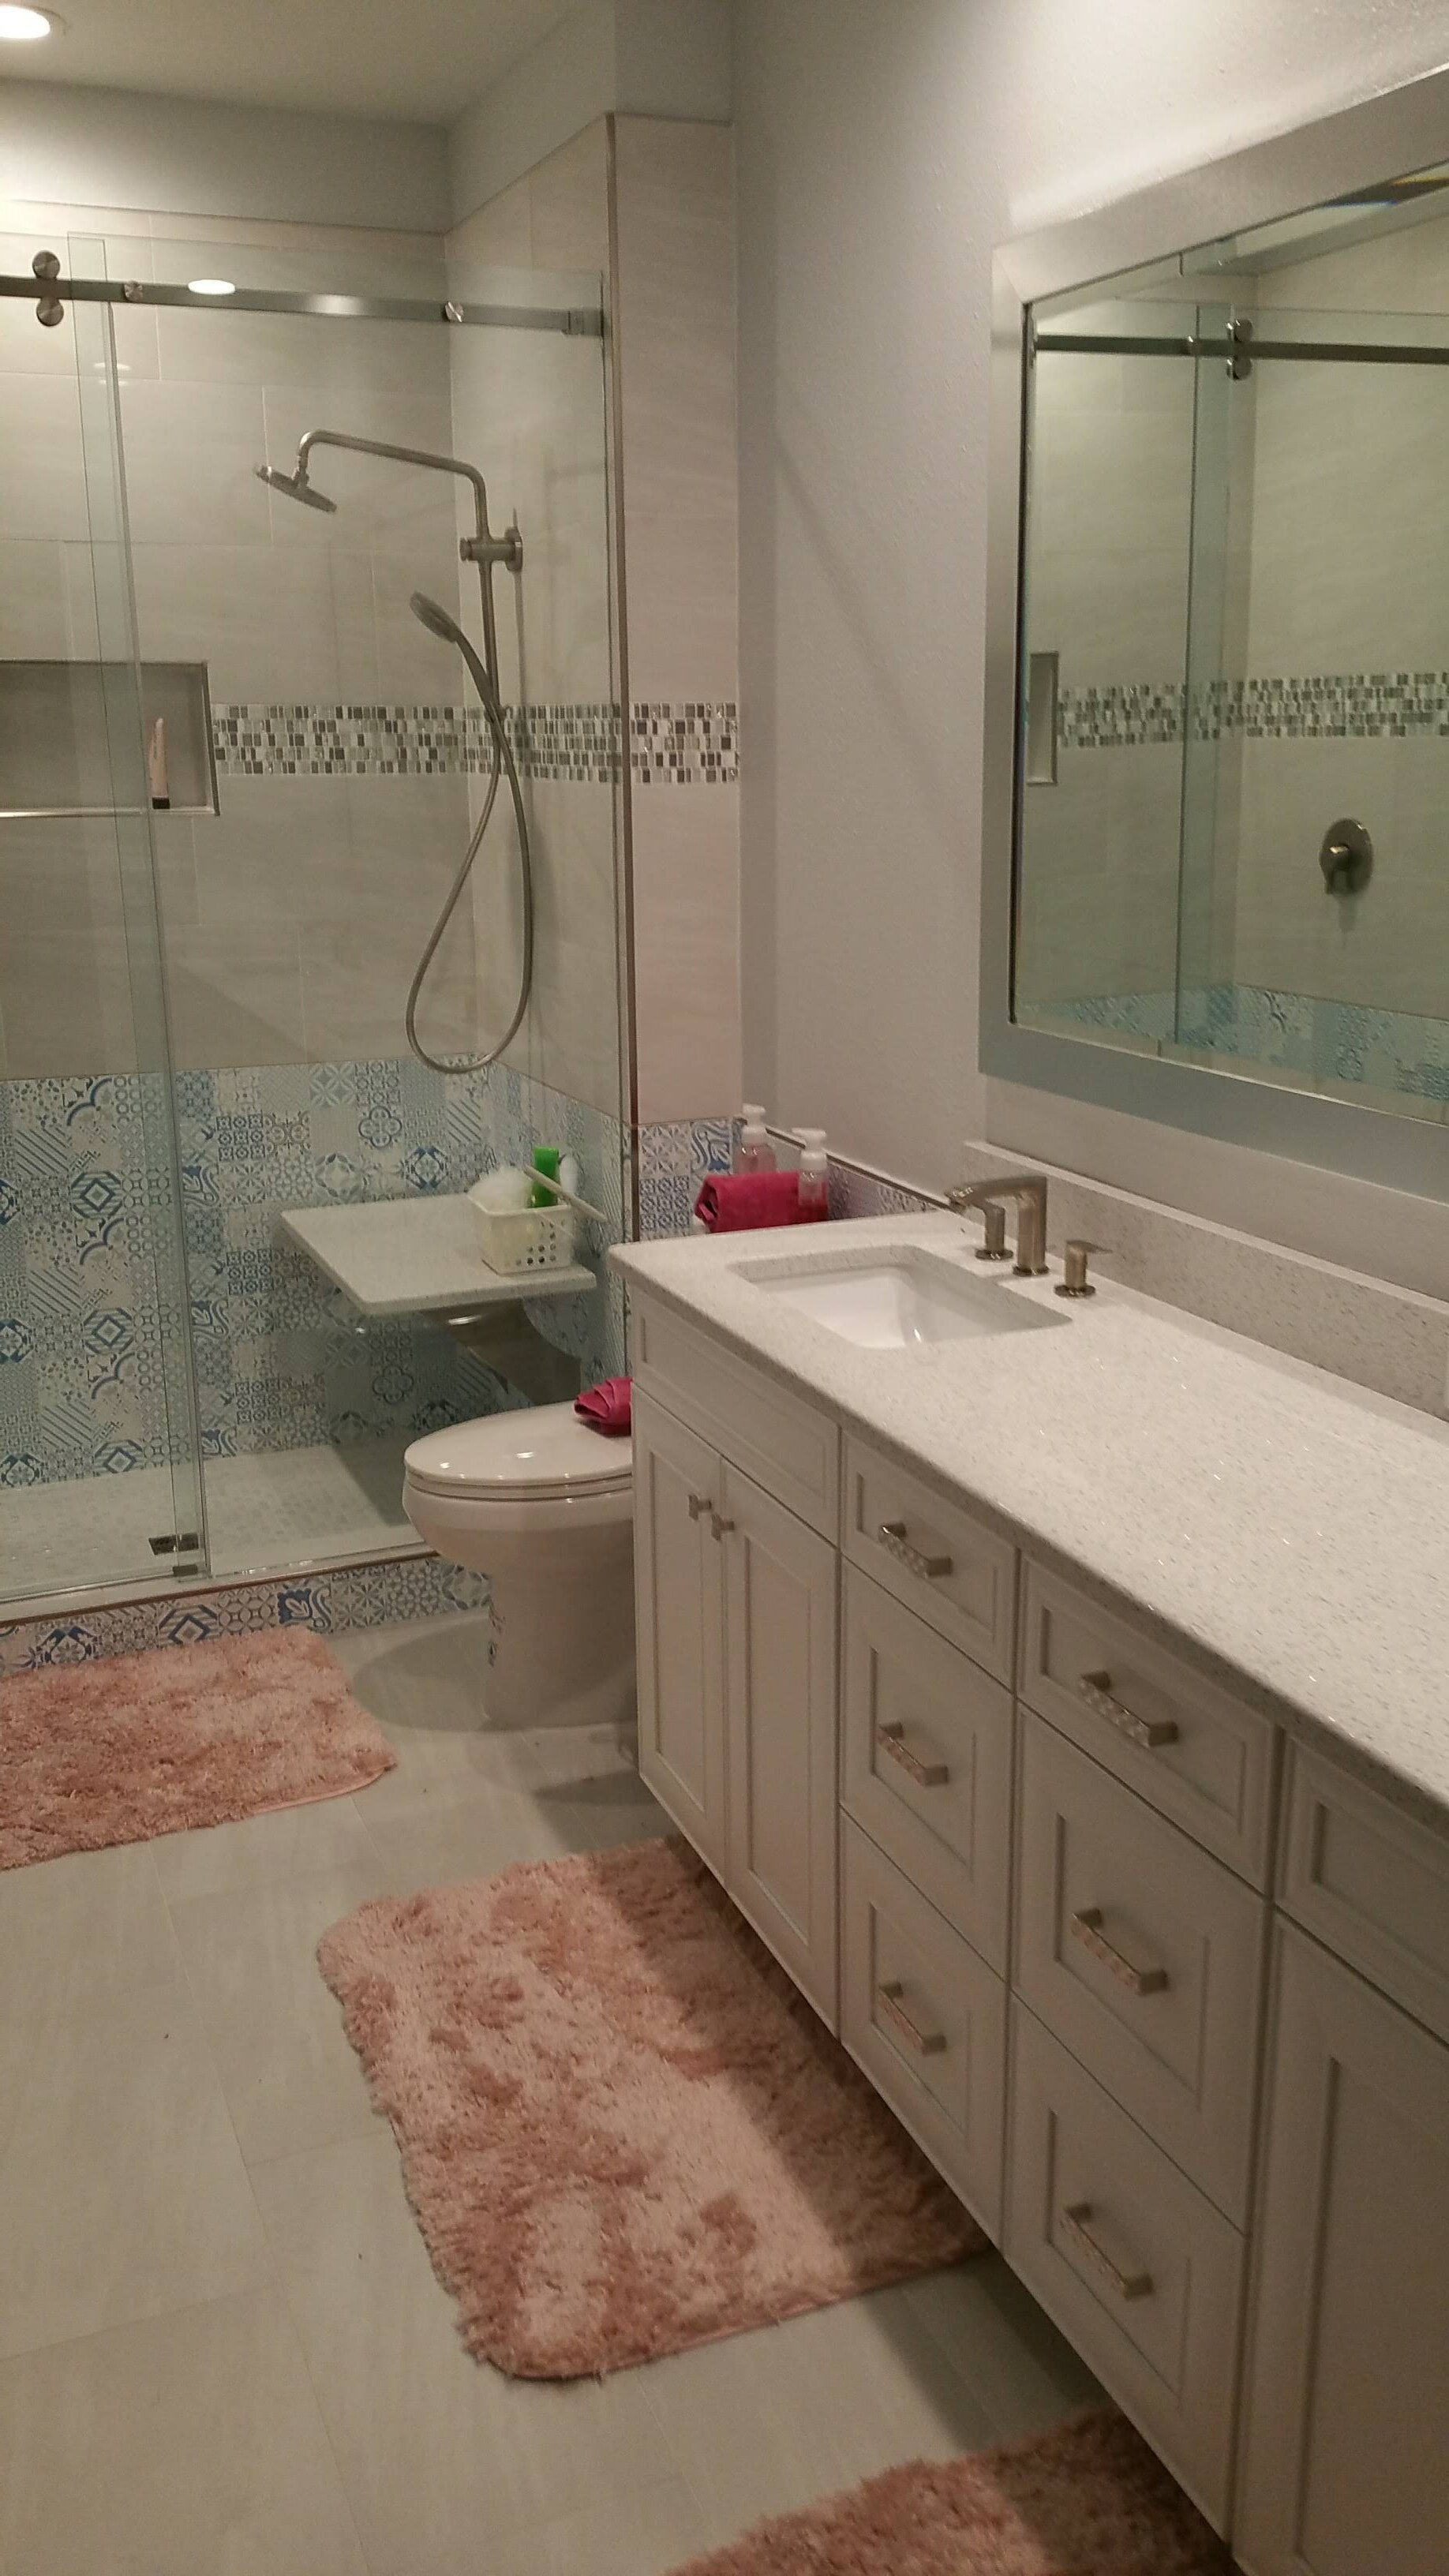 Tampa FL full bathroom remodeling services from Relo Interior Design